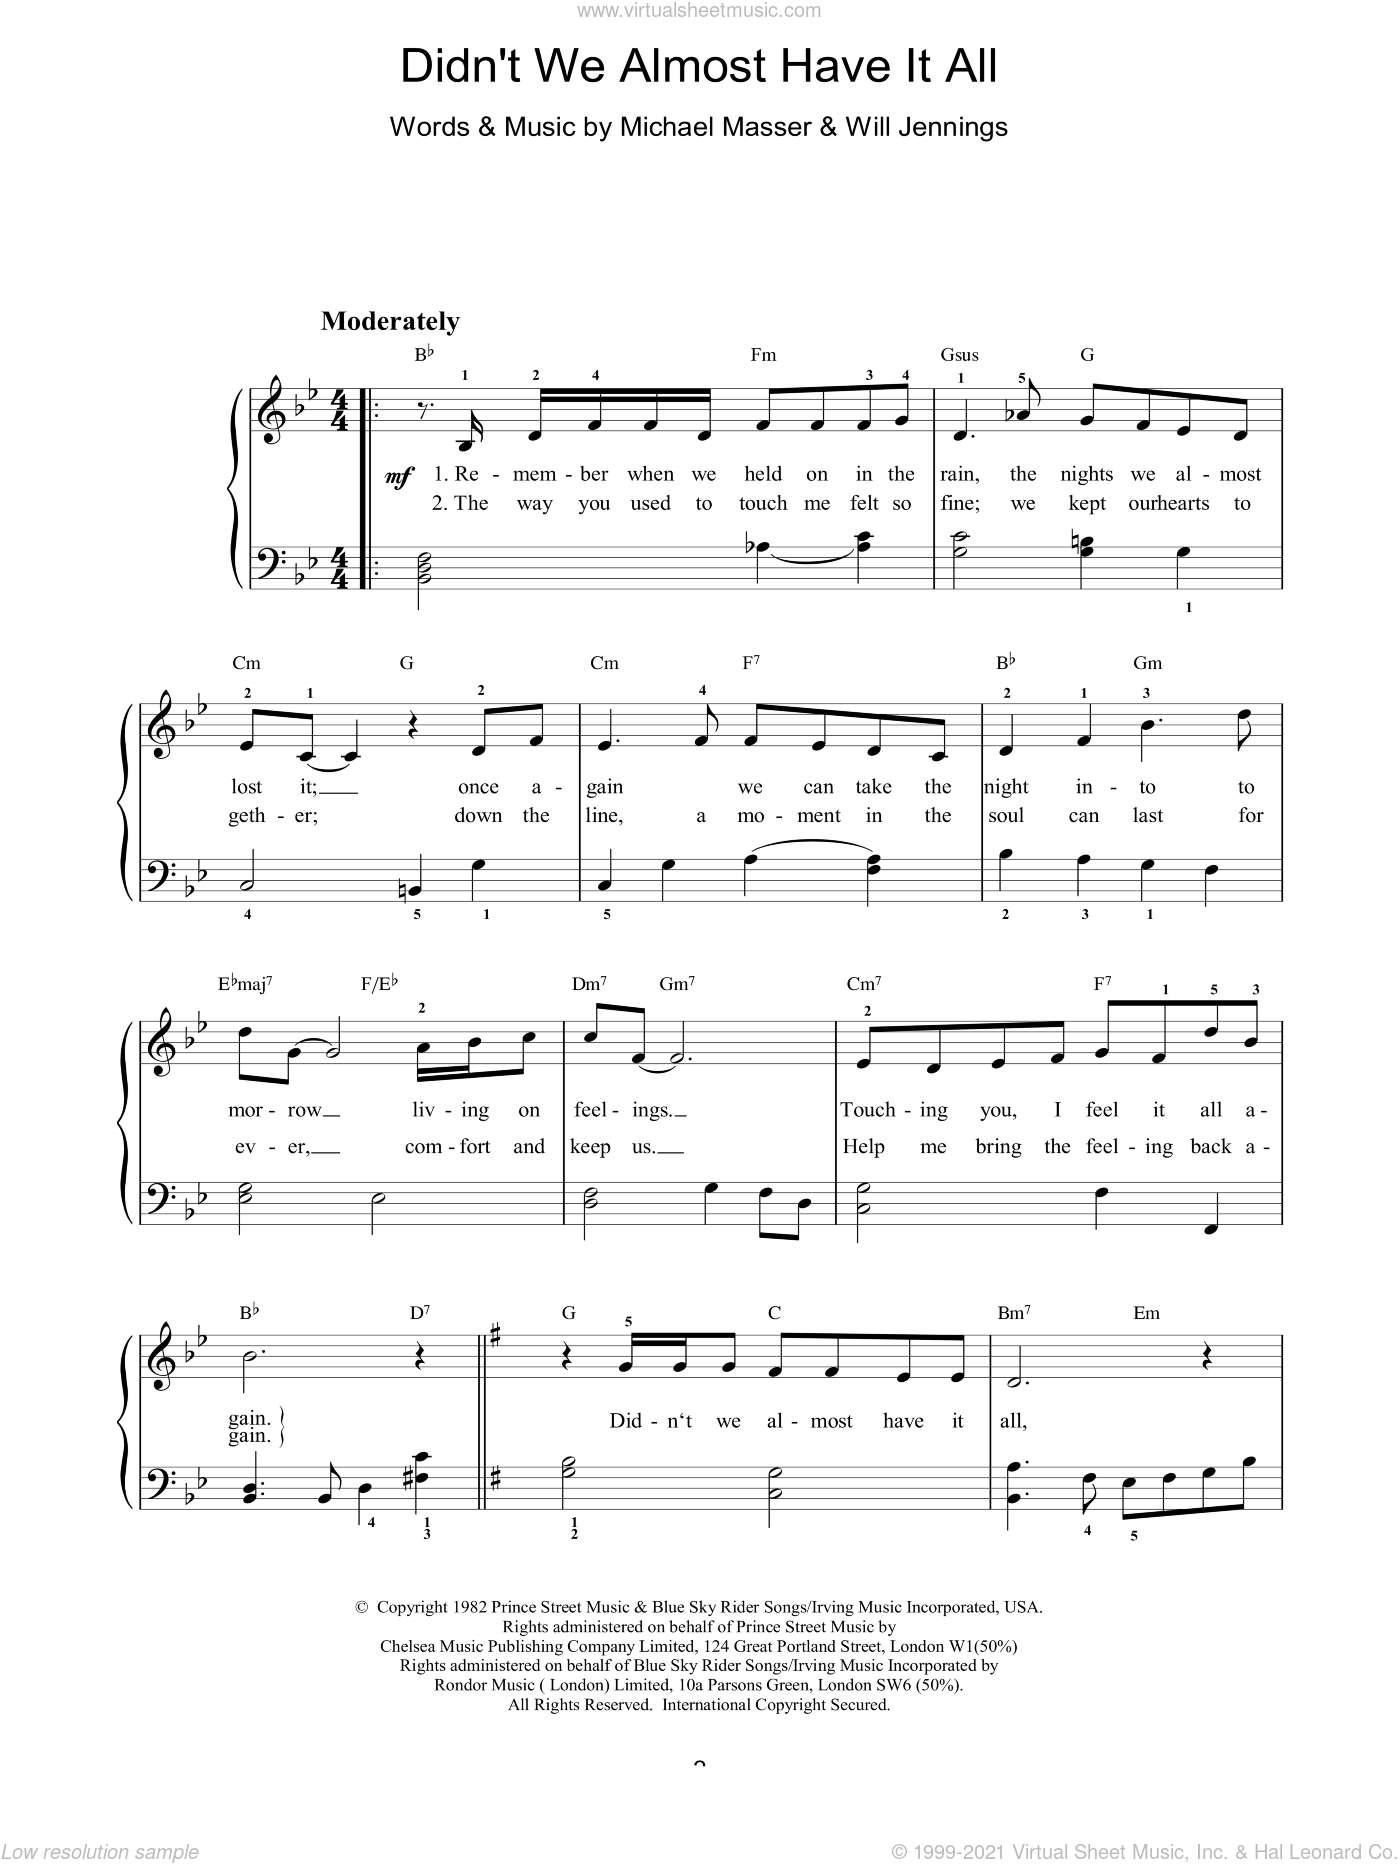 Didn't We Almost Have It All sheet music for voice, piano or guitar